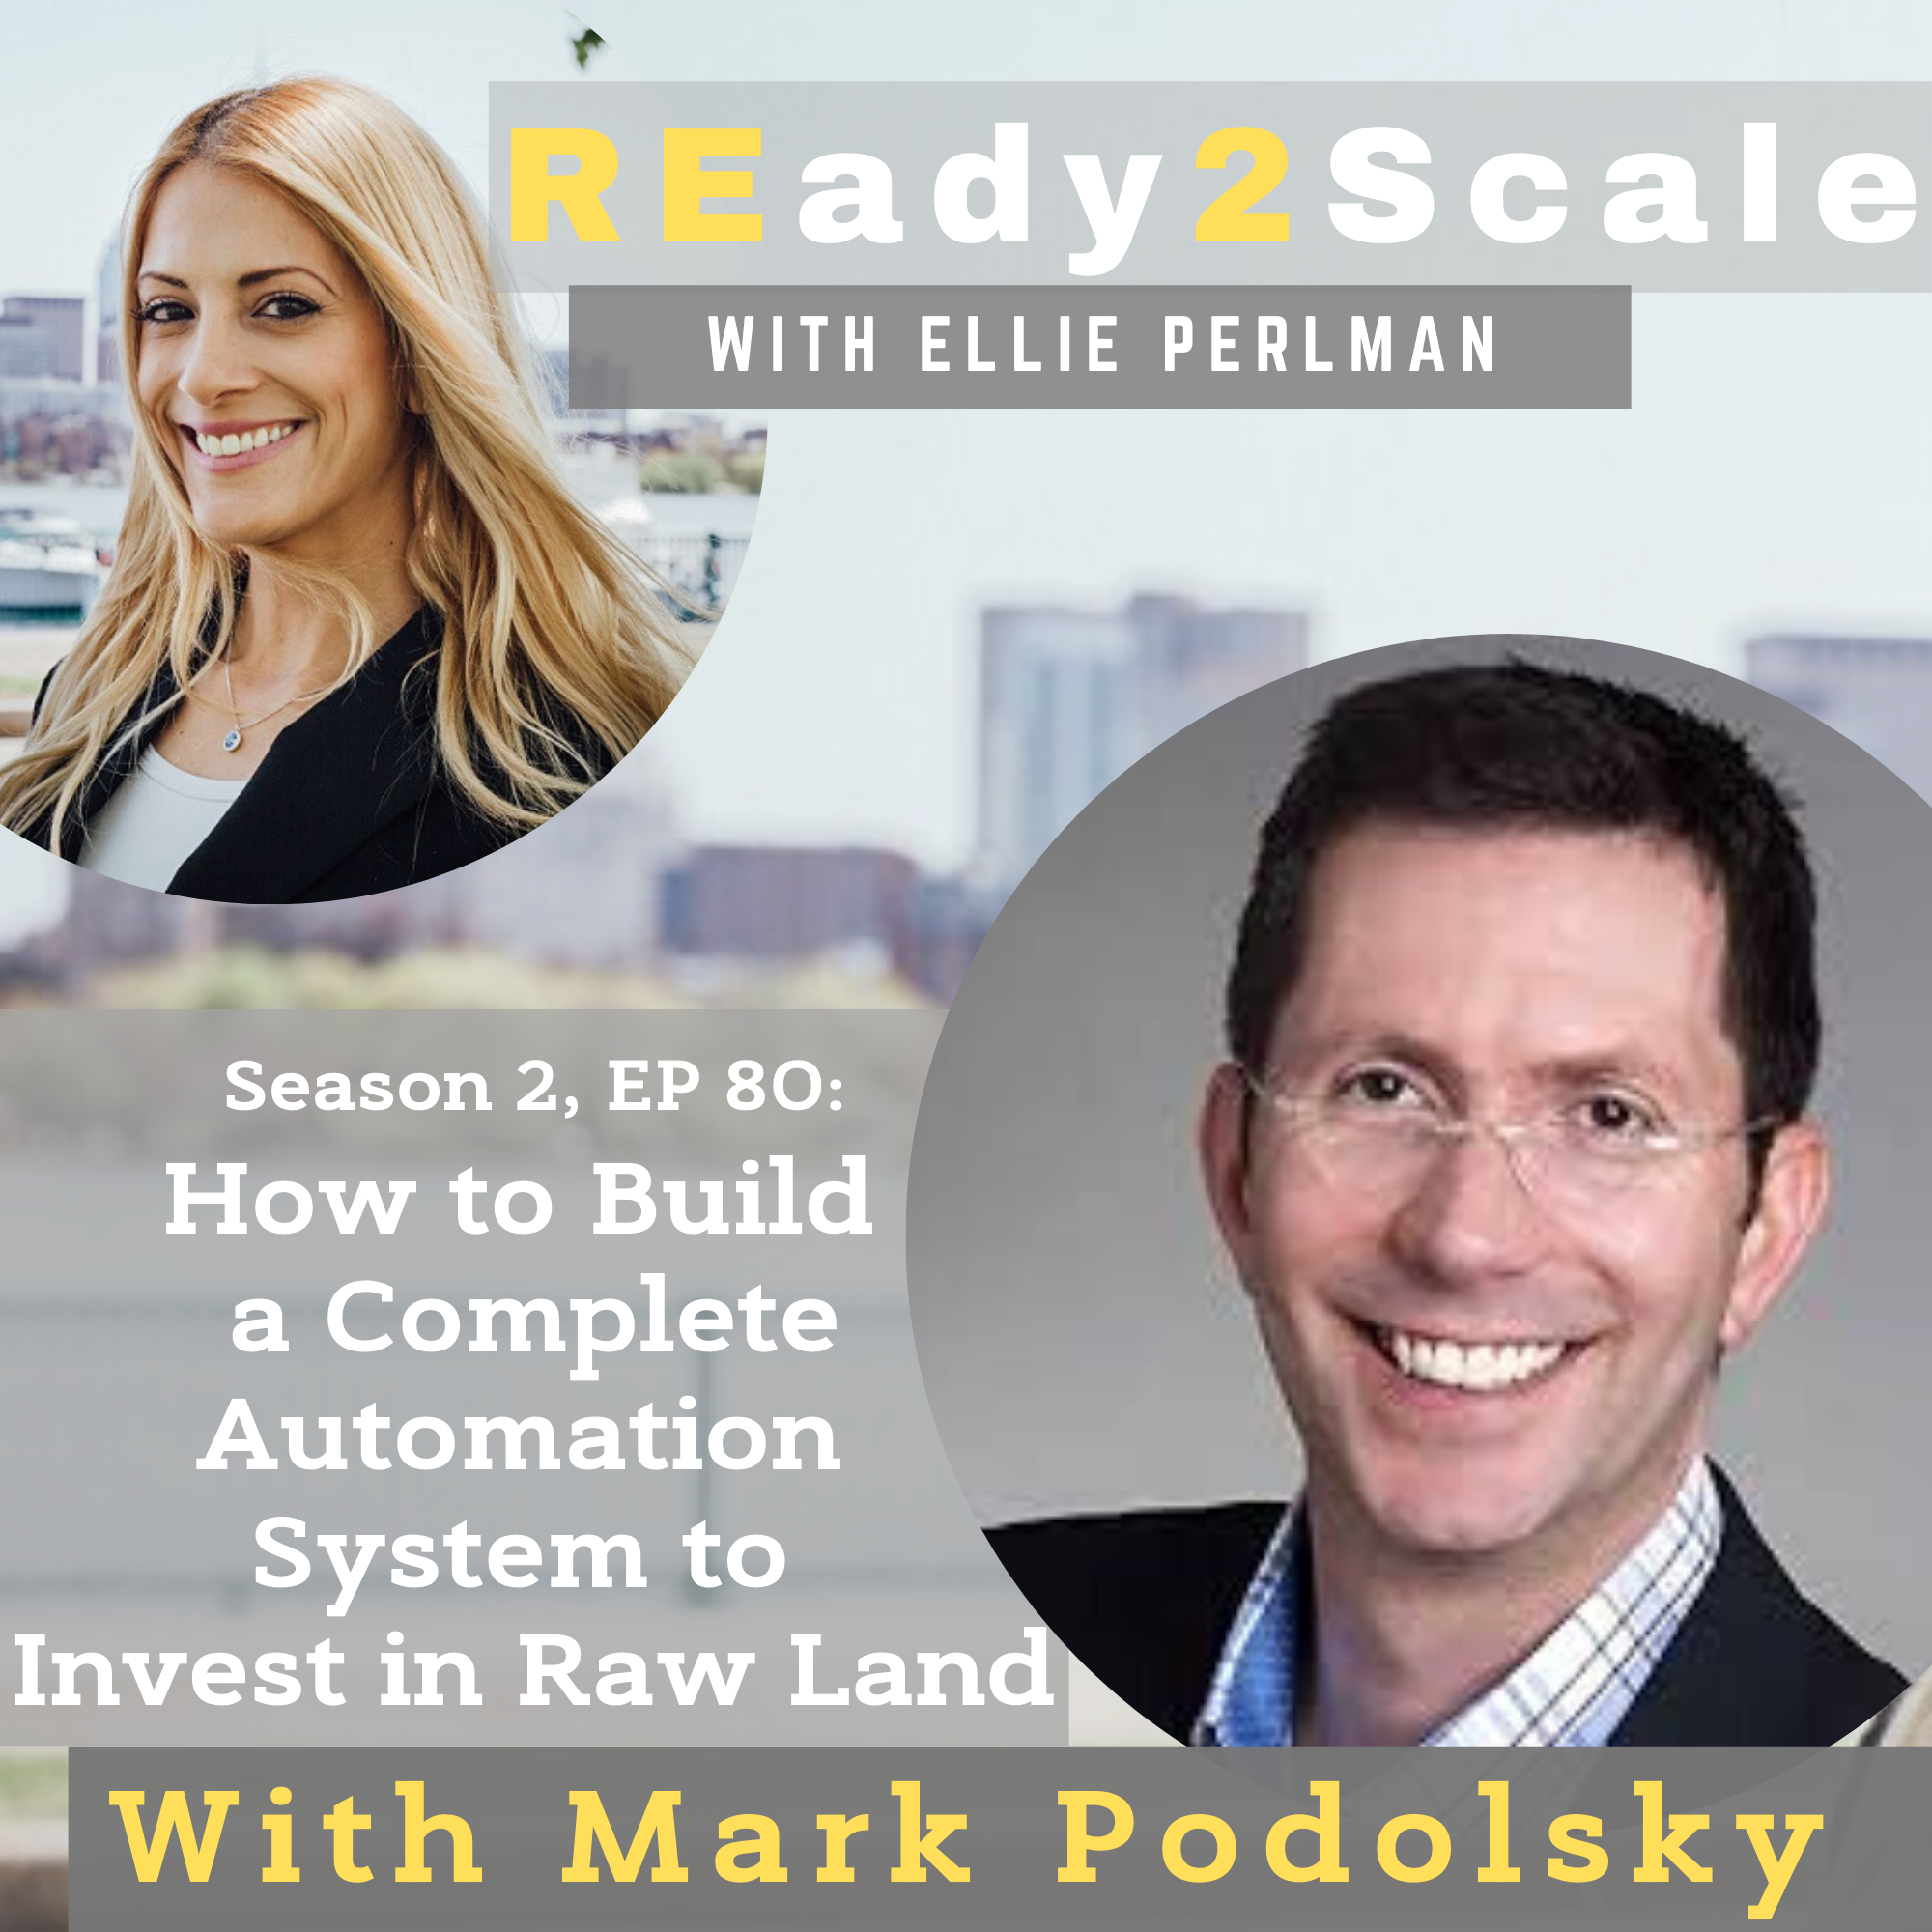 S2 EP 80: How to Build a Complete Automation System to Invest in Raw Land with Mark Podolsky